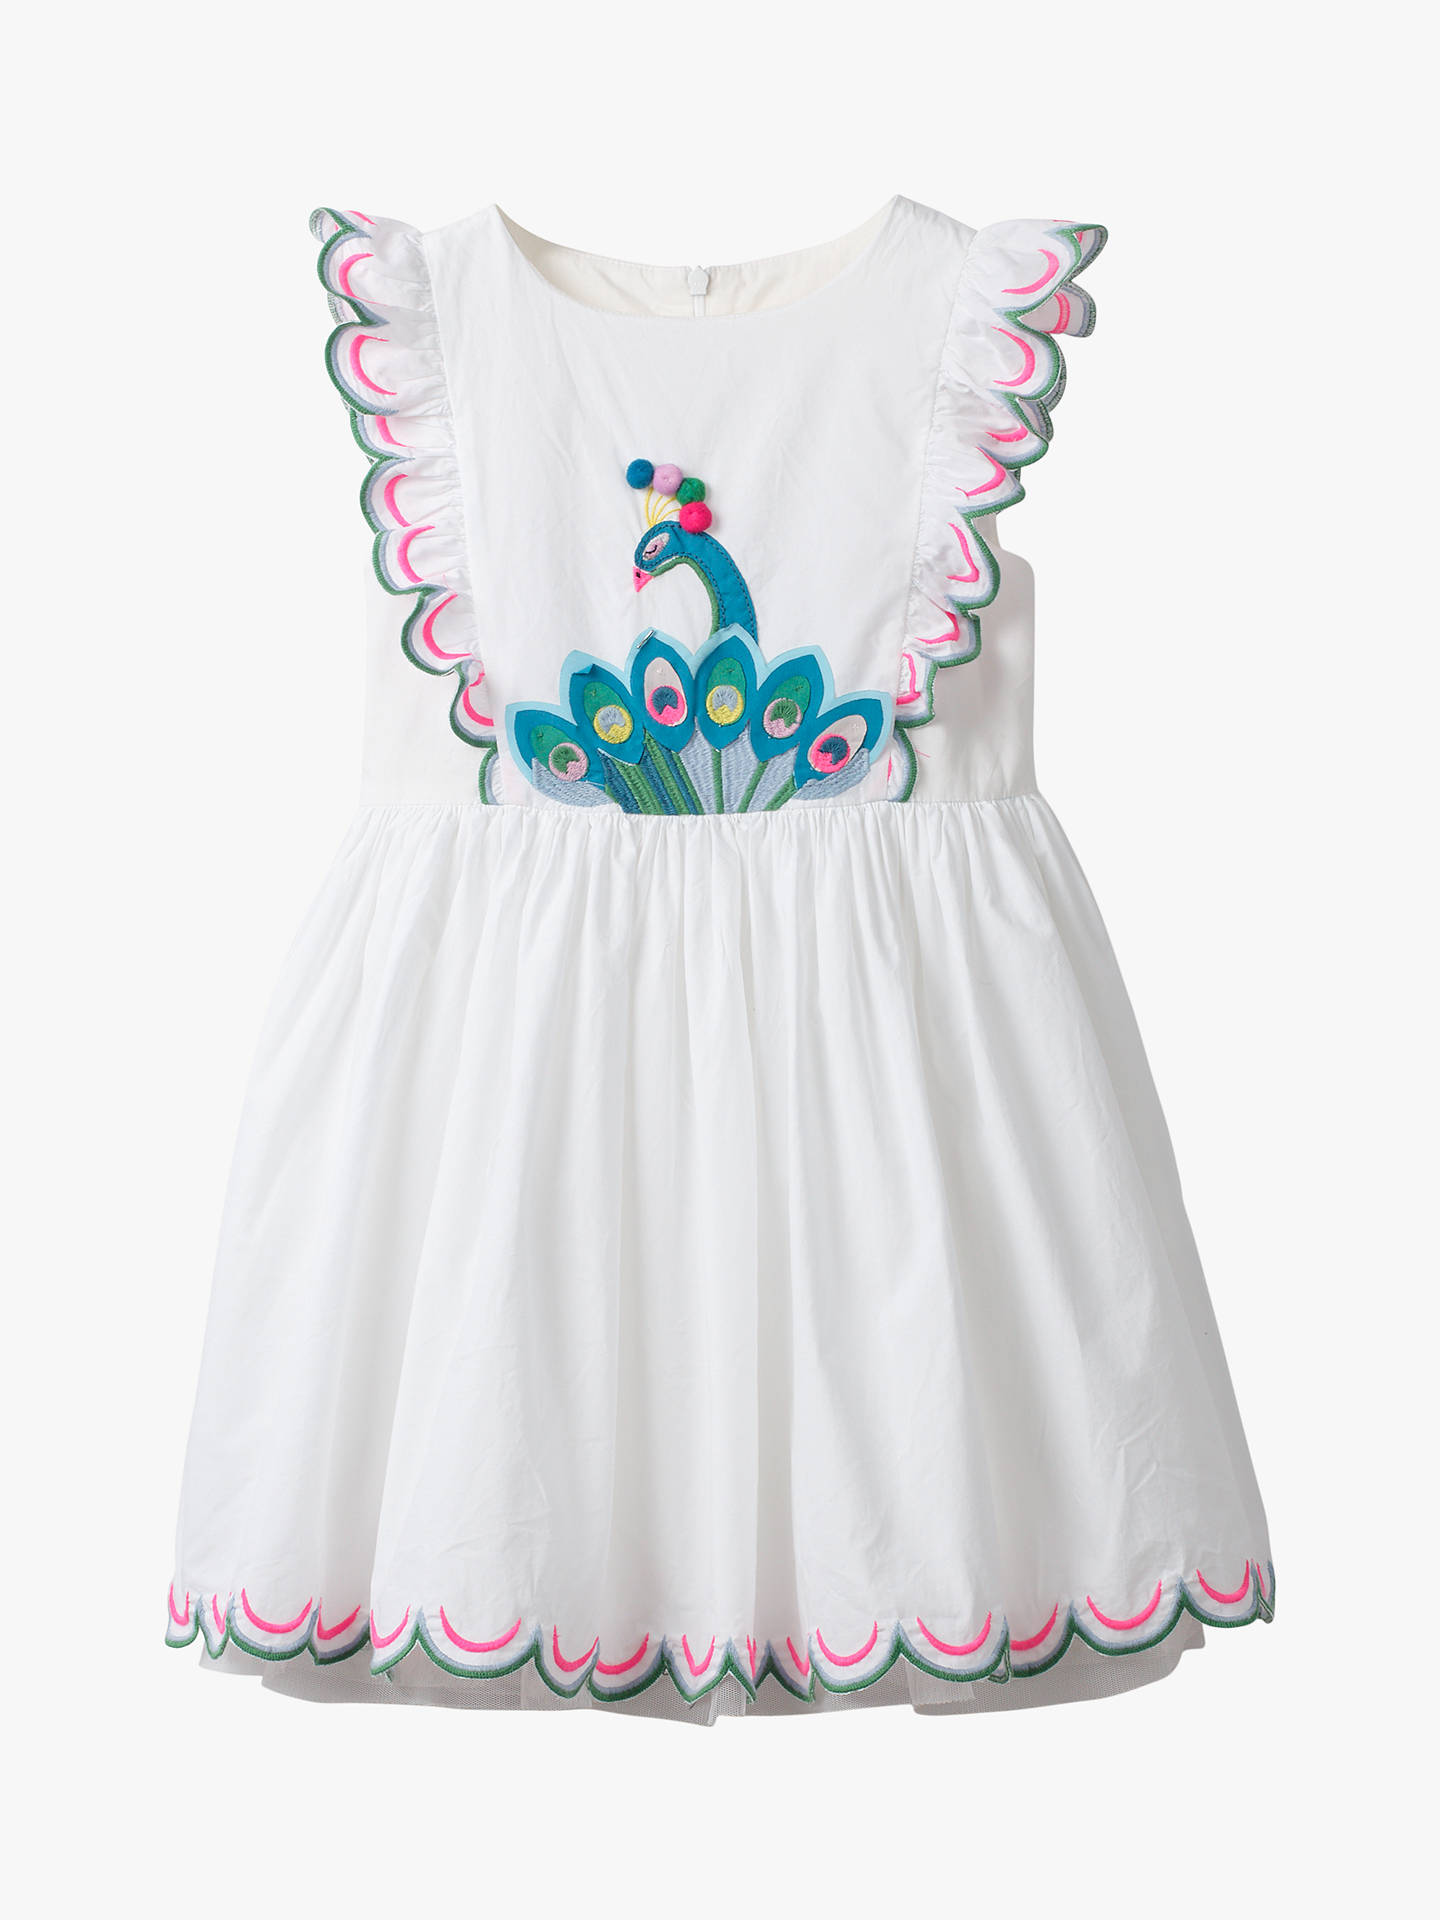 025d859842319 ... Buy Mini Boden Girls' Peacock Embroidered Scallop Dress, Ivory, 8-9  years ...